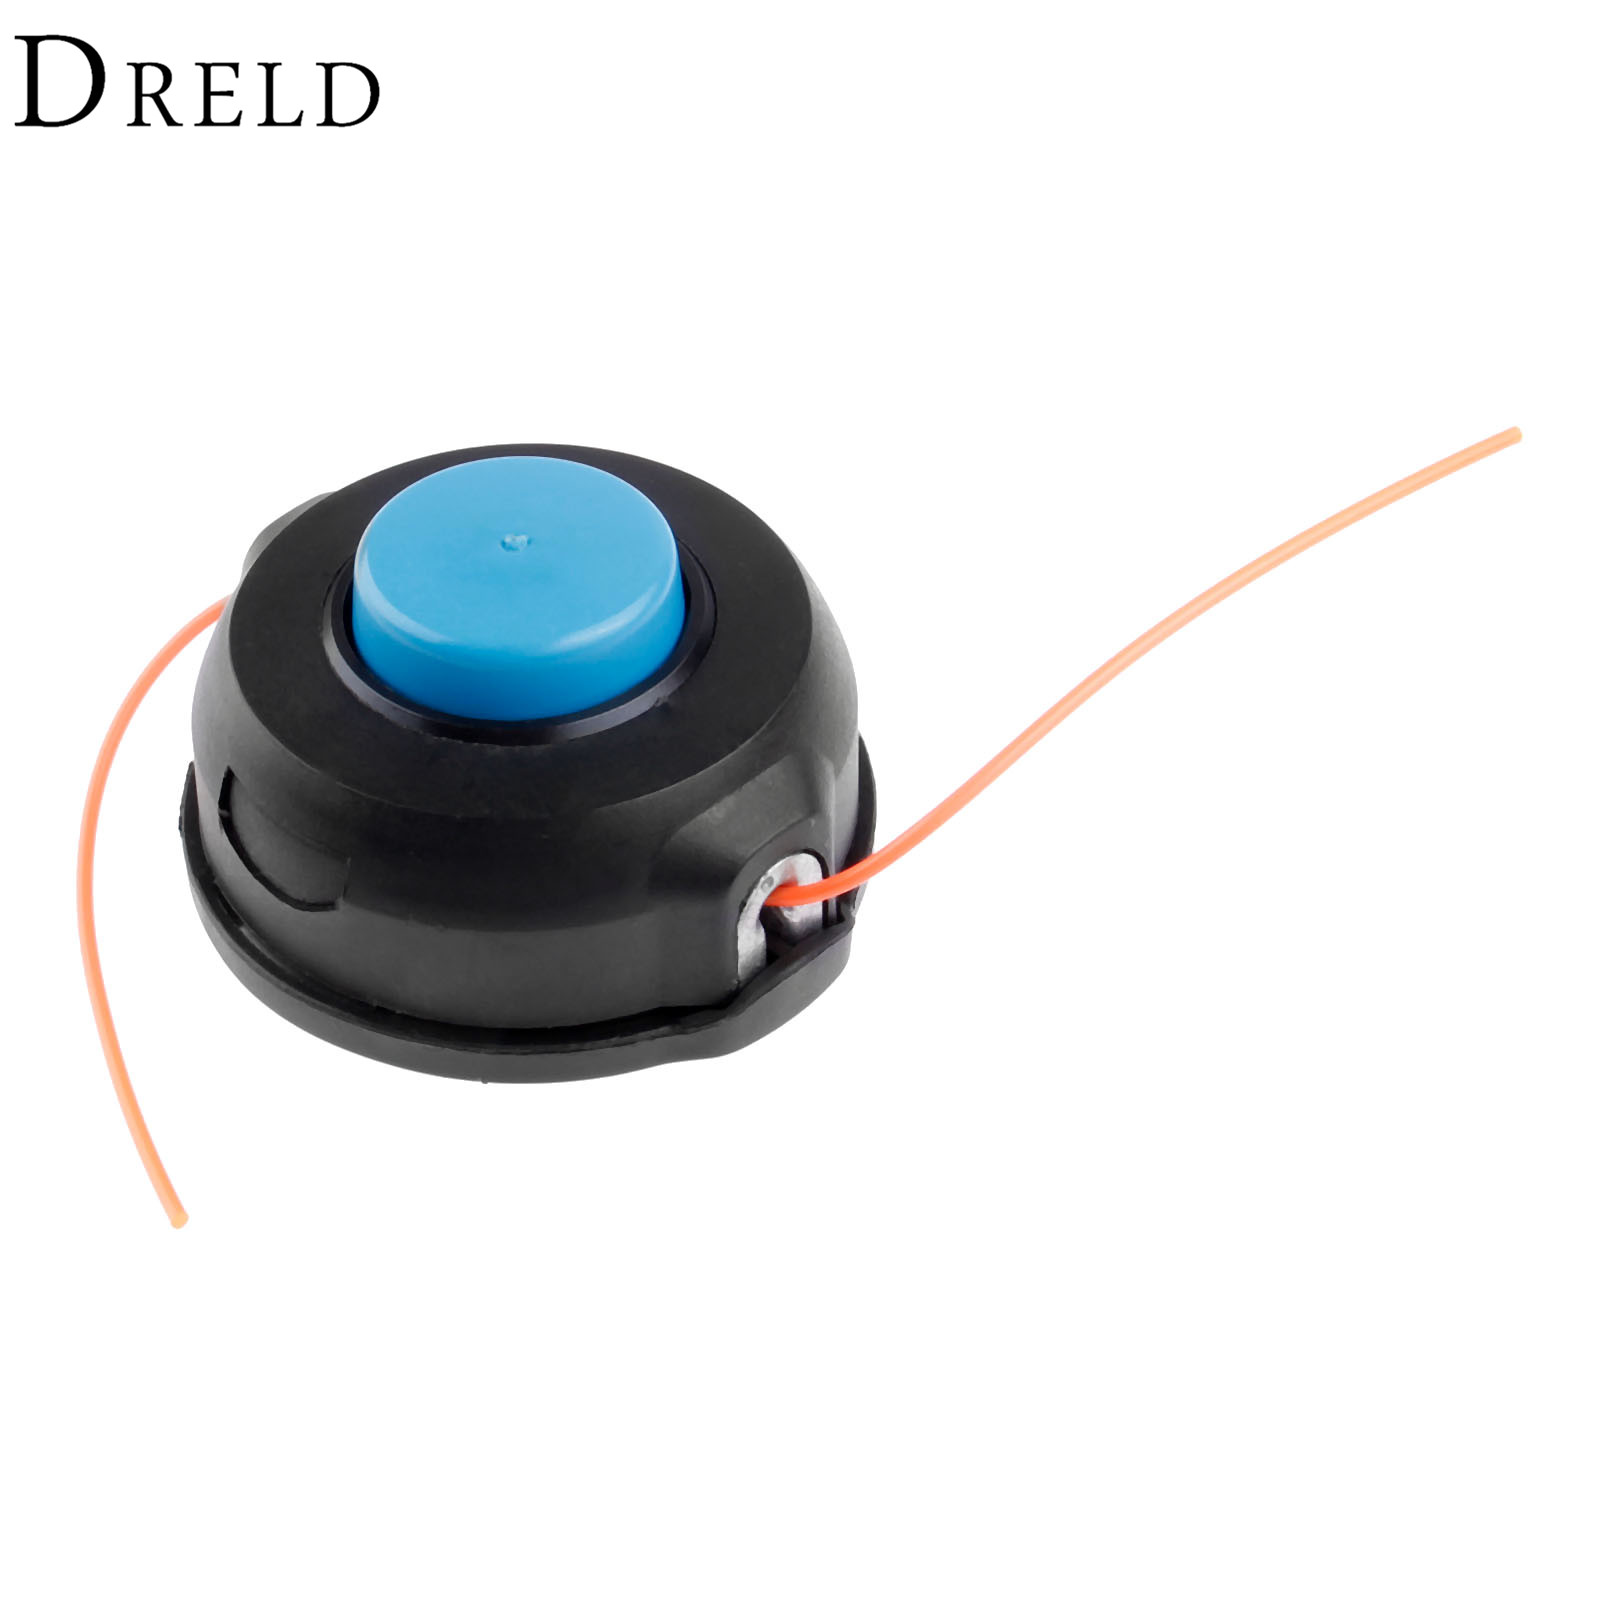 DRELD T25 Trimmer Head Shaft Line String Grass Cutter Bump Tap and Go Nylon Head With M10*1.25 Brush Cutter Spare Parts carburetor for stl fs160 fs200 fs280 fr220 brush cutter parts replacement trimmer weed eater grass cutter carbs 41191200602 04